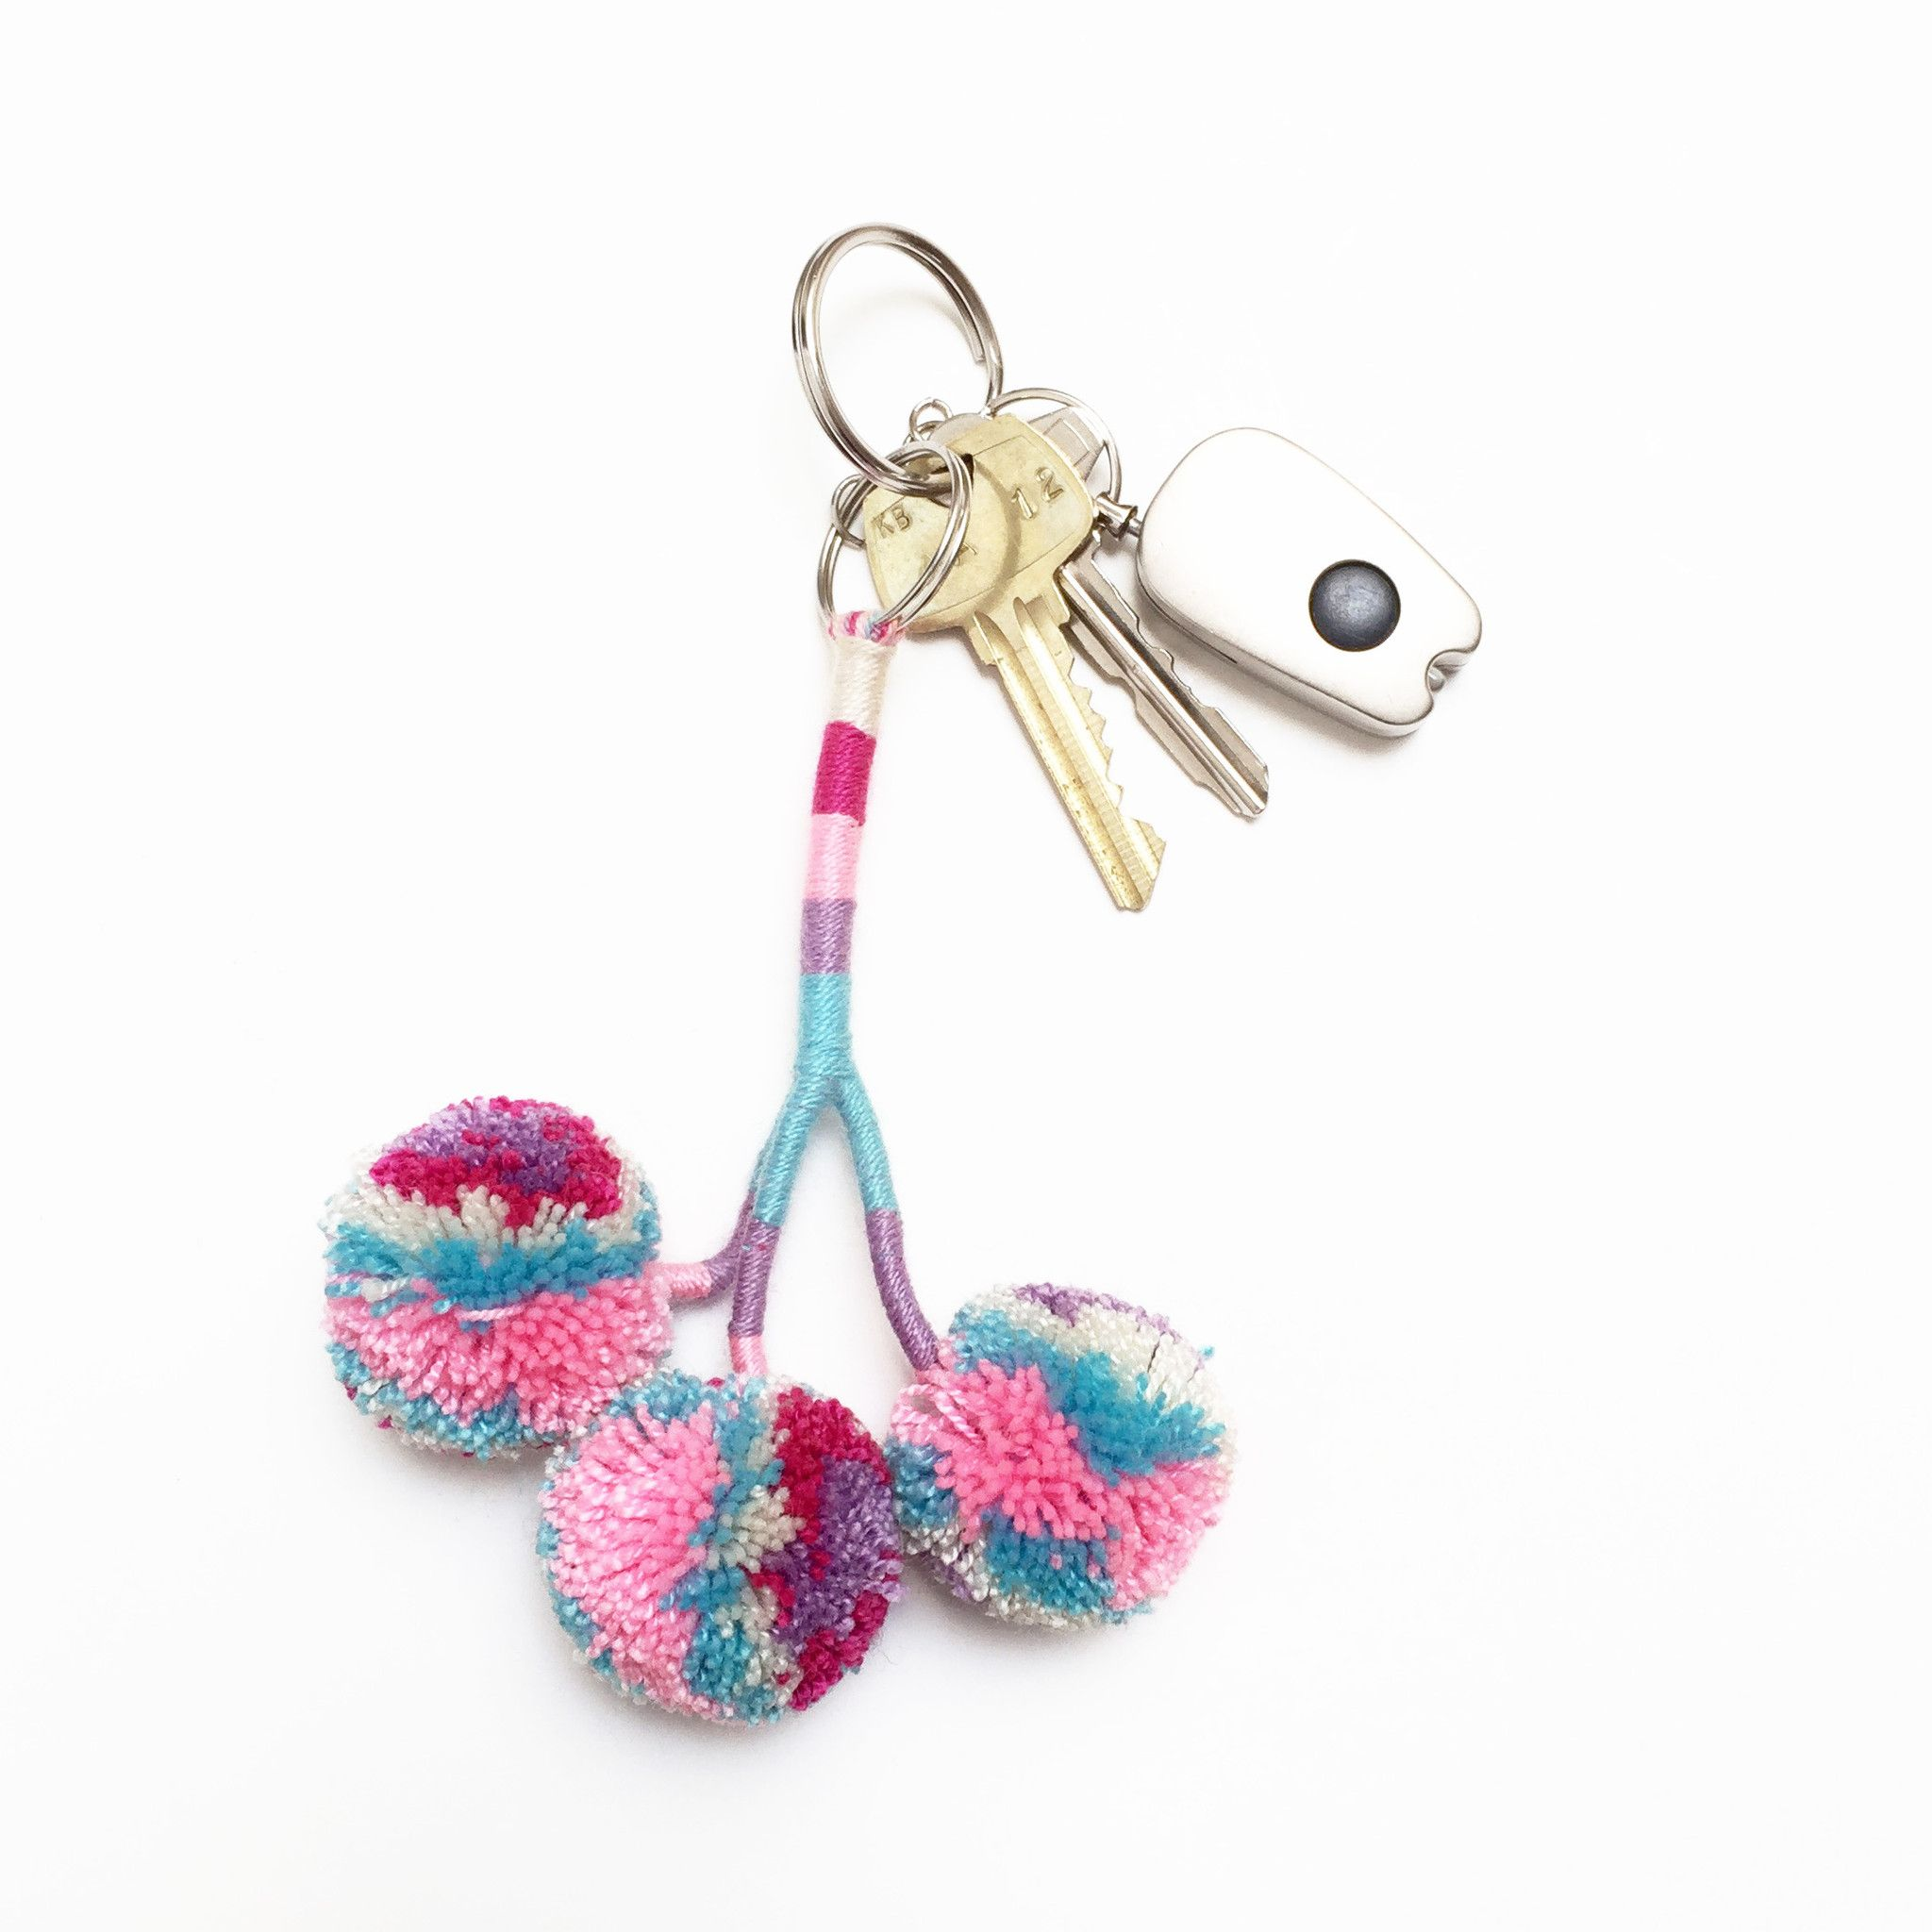 Colorful Pom Pom Key Charm